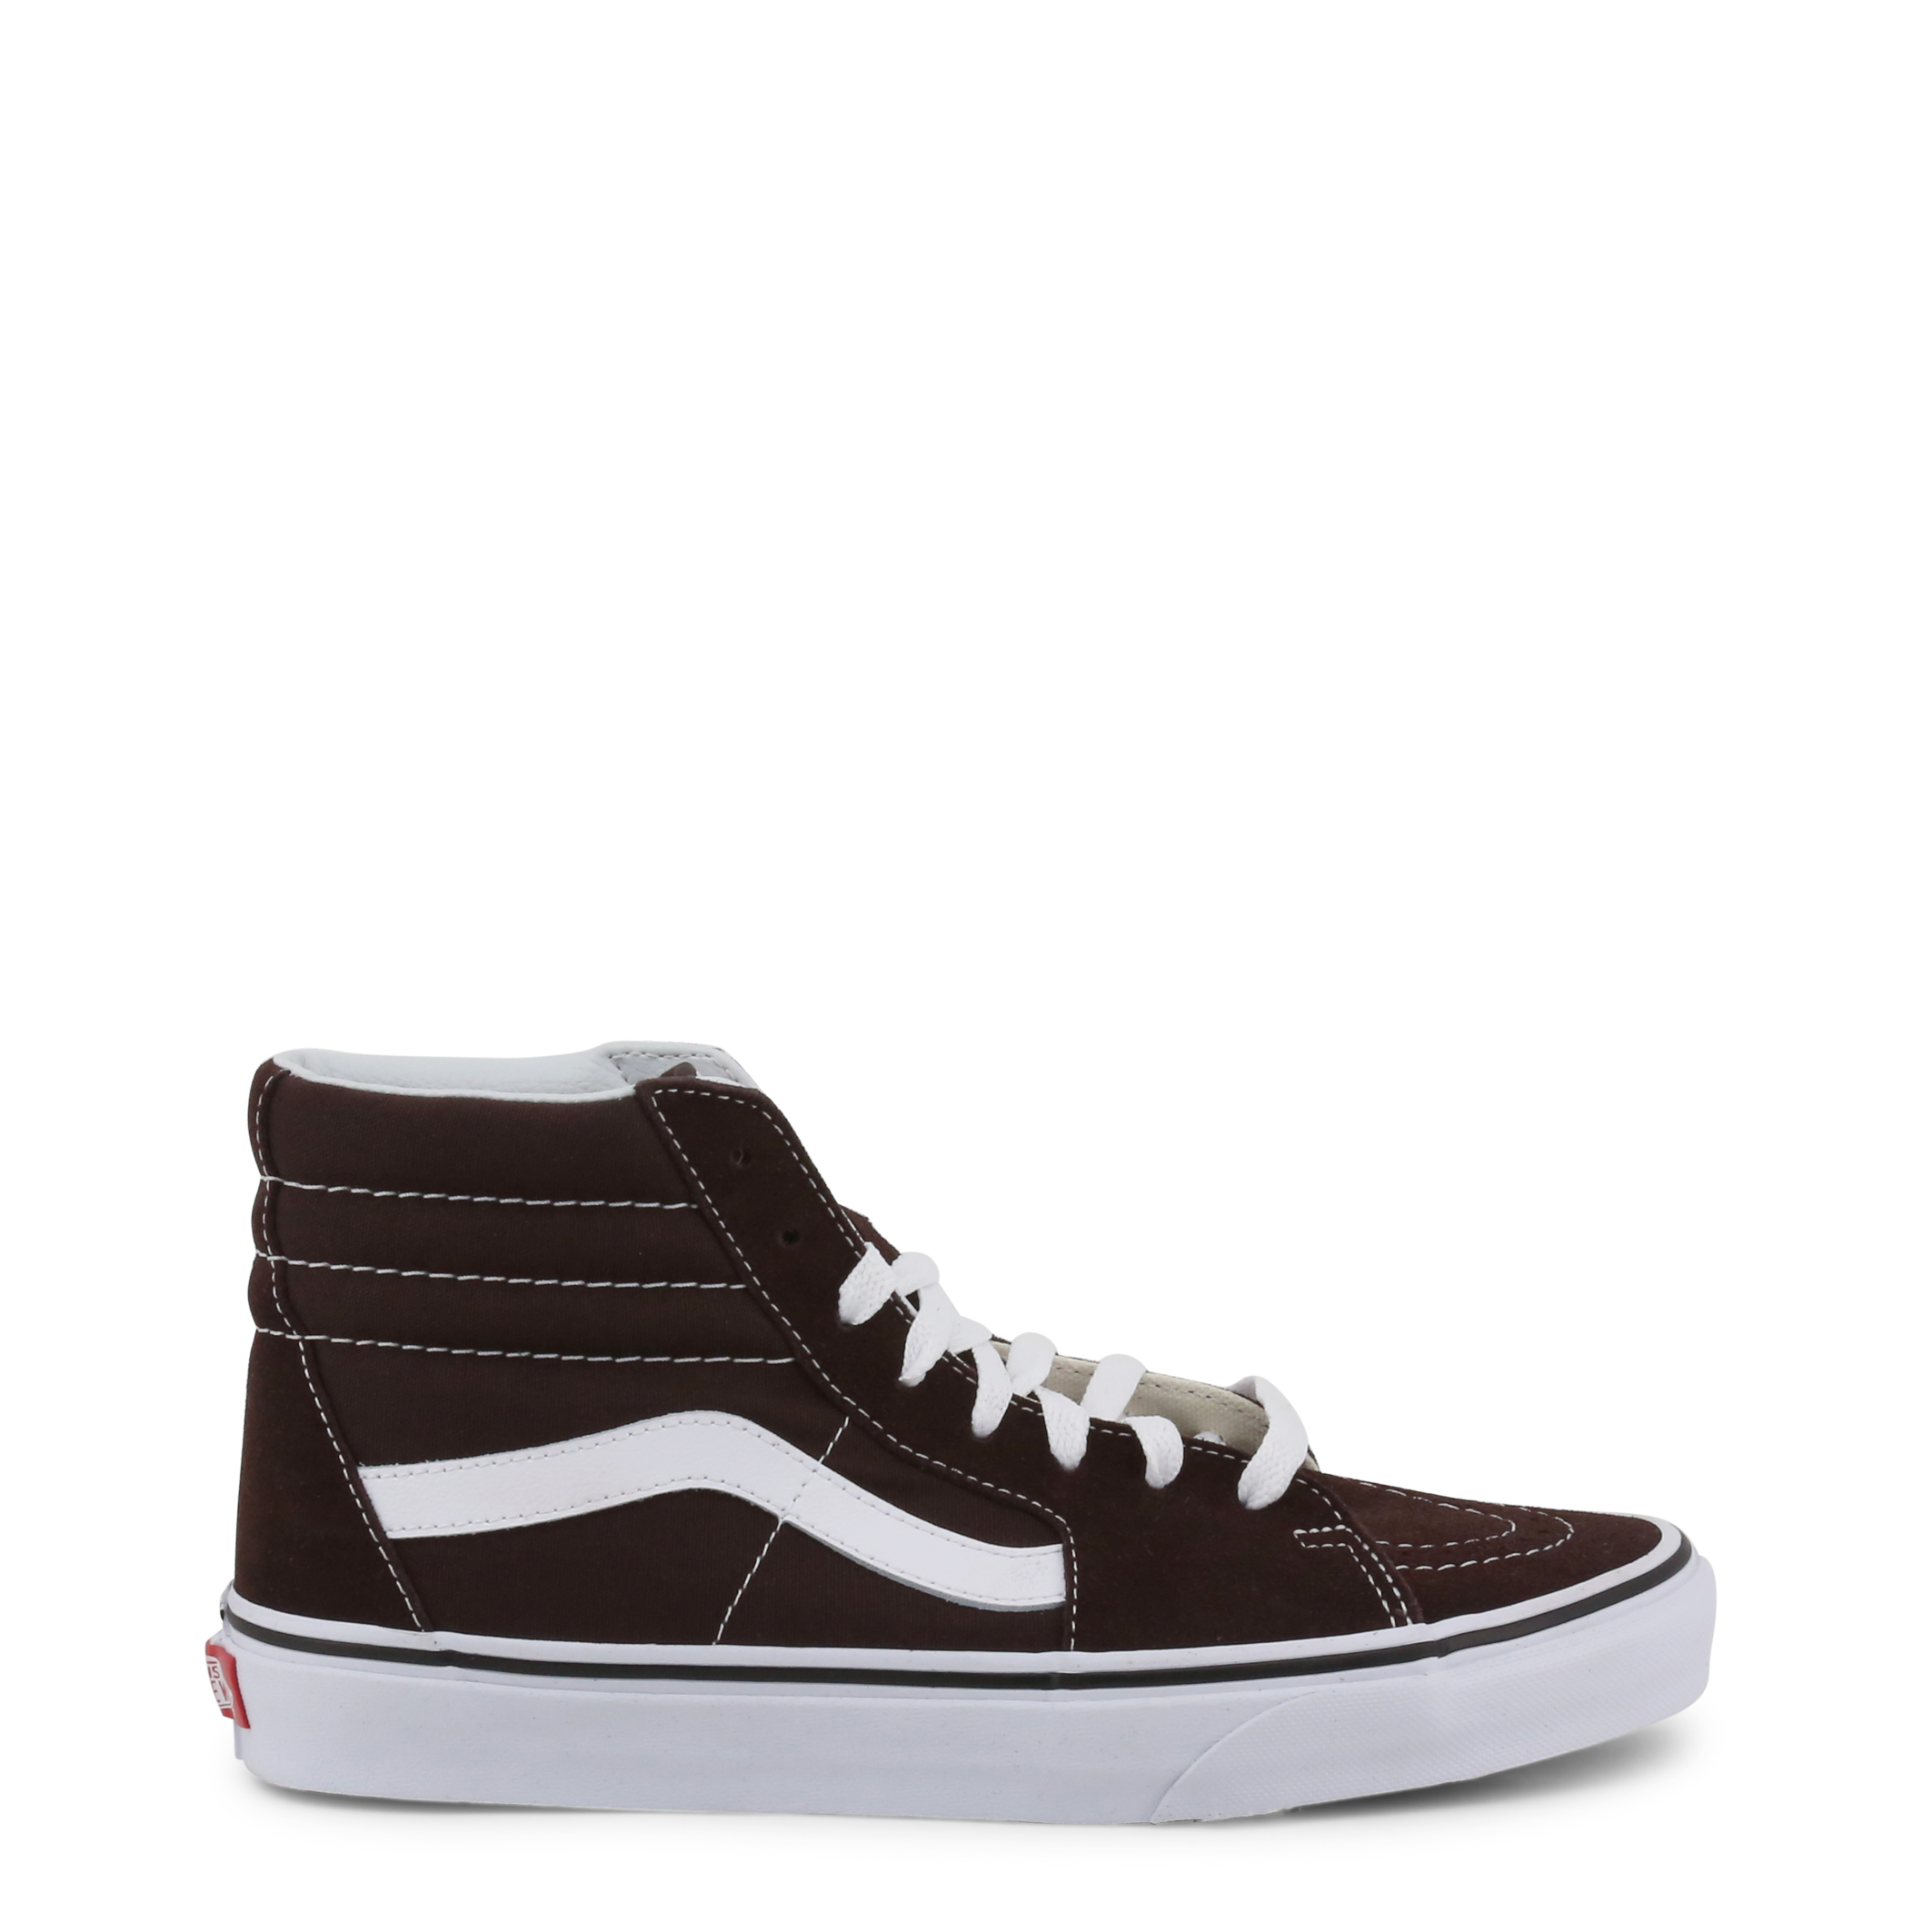 Baskets / Sport  Vans SK8-HI_VN0A38 brown